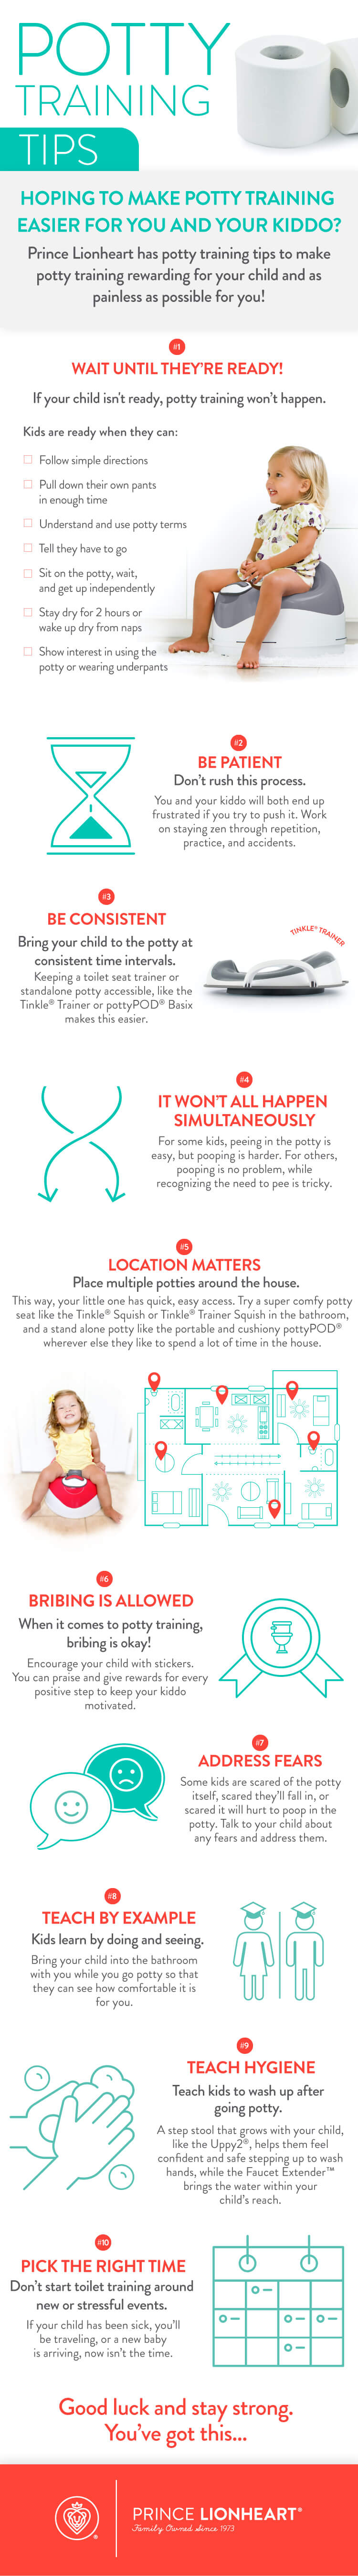 Potty trainging tips infographic